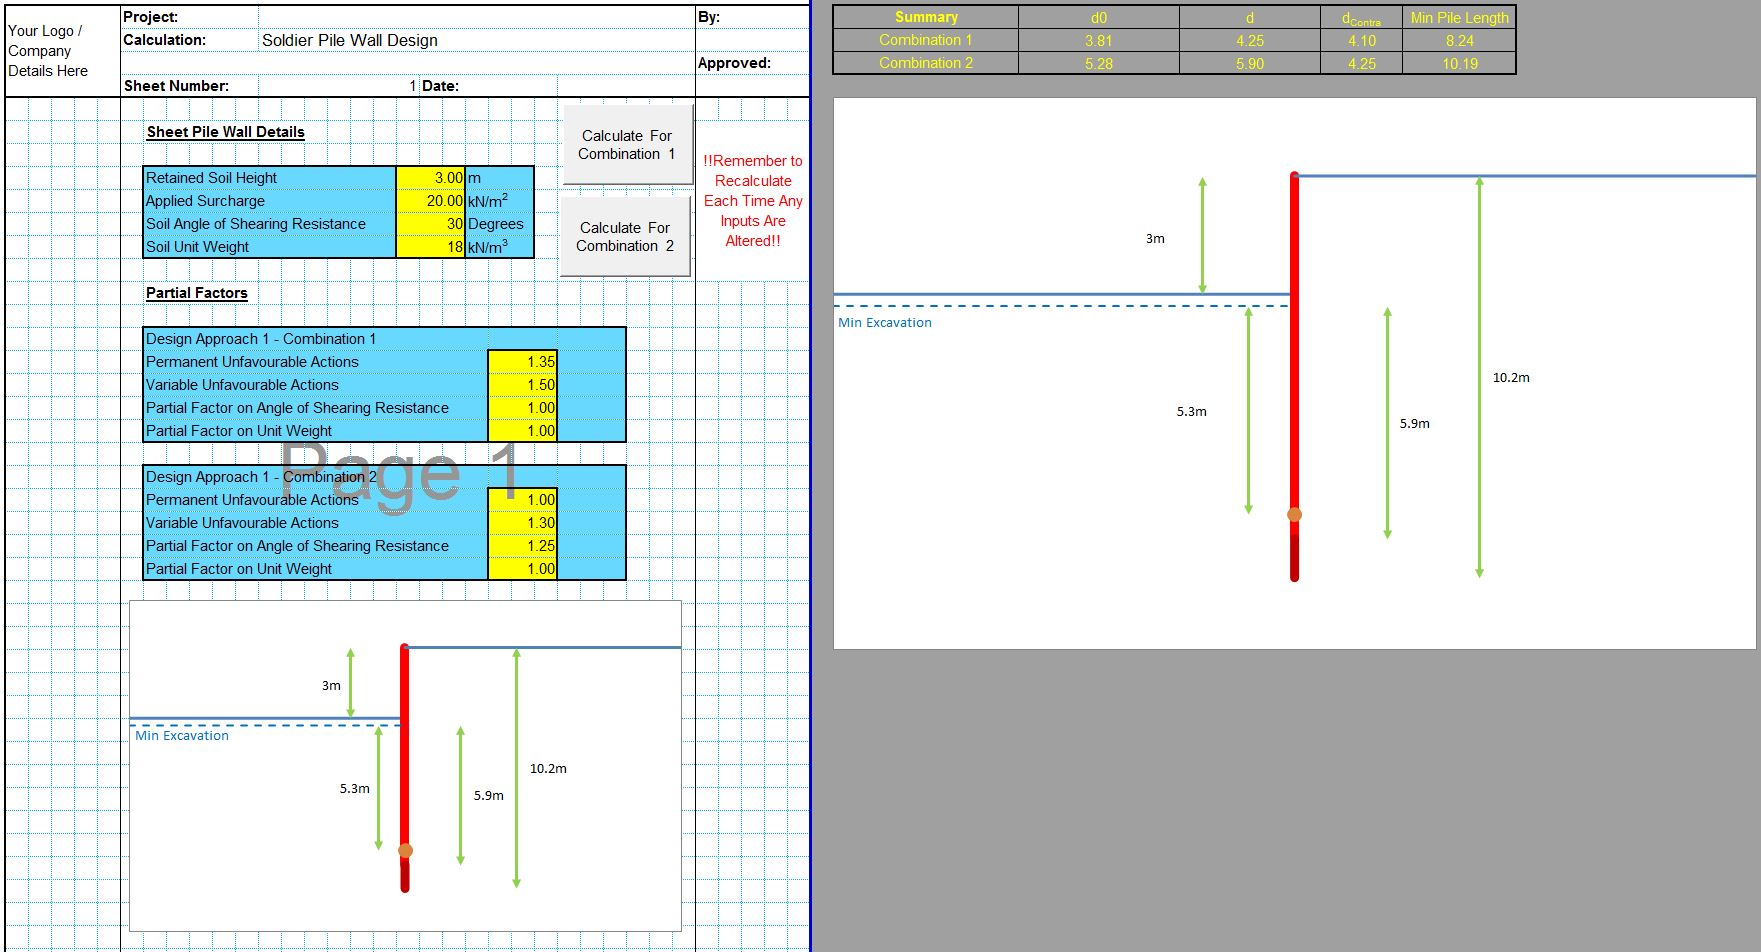 Soldier Pile Wall Design Spreadsheet 1